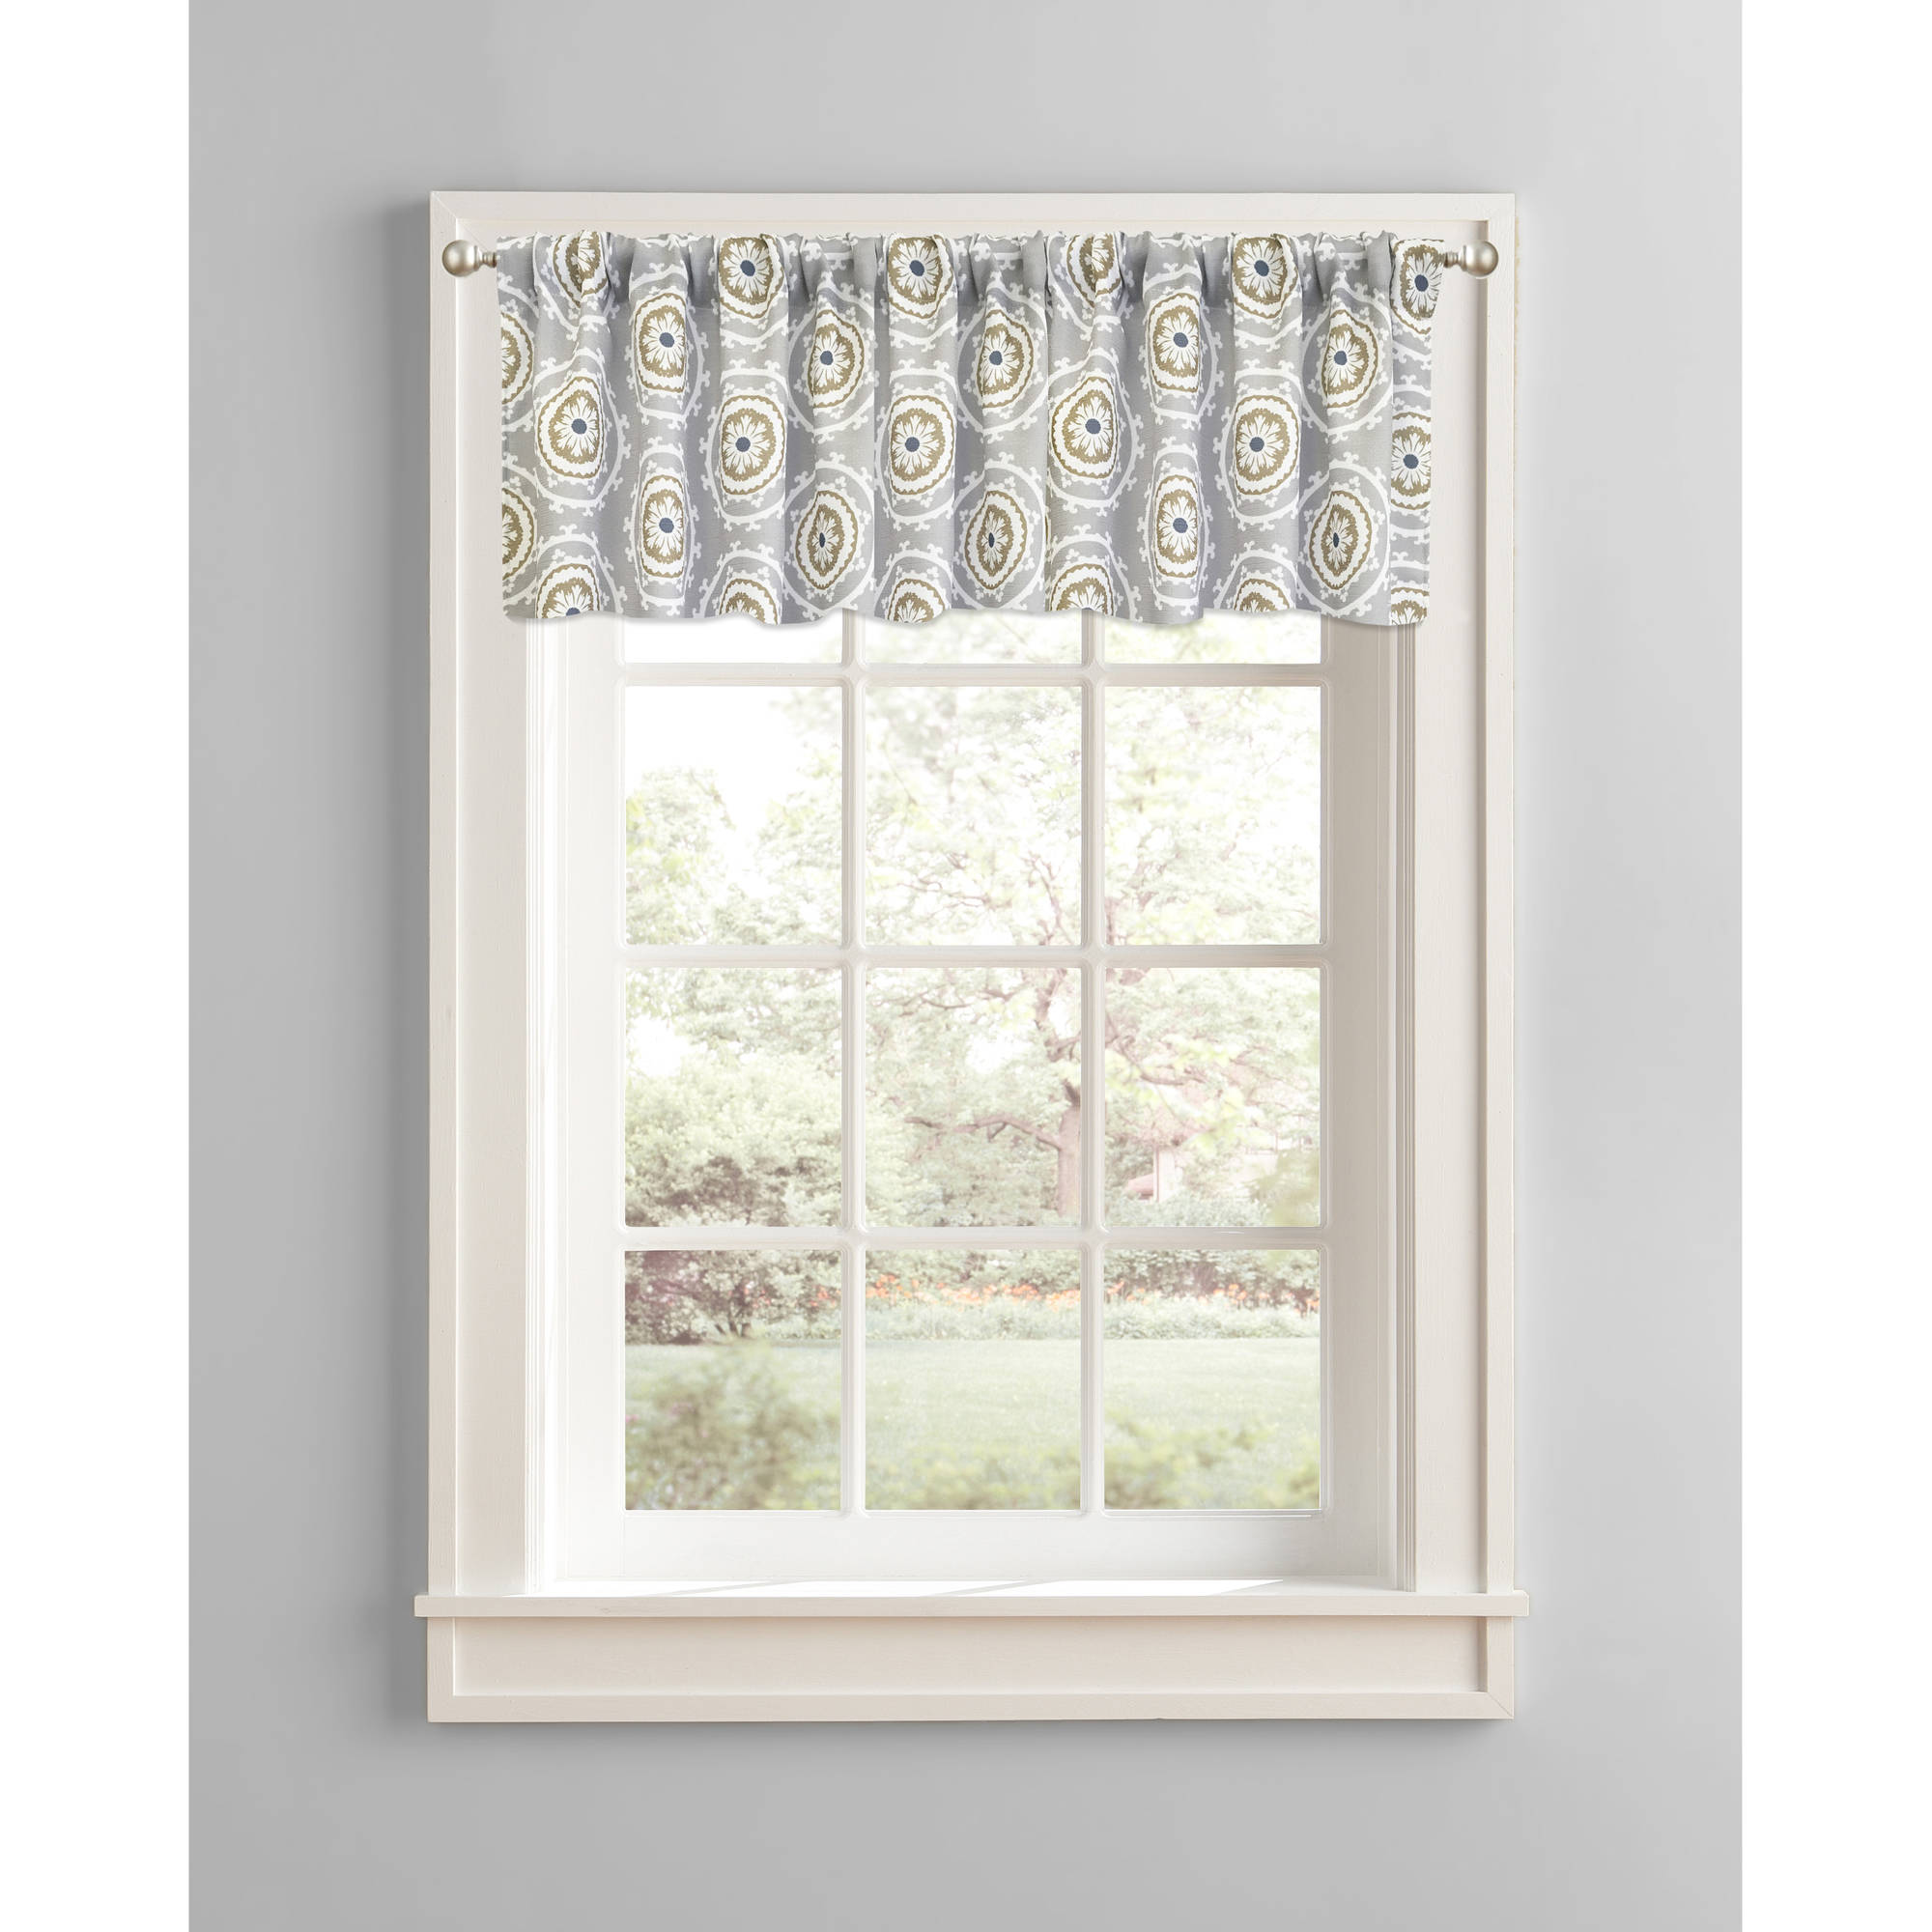 Better Homes and Gardens Gray Medallions Valance, Rod Pocket by Colordrift LLC